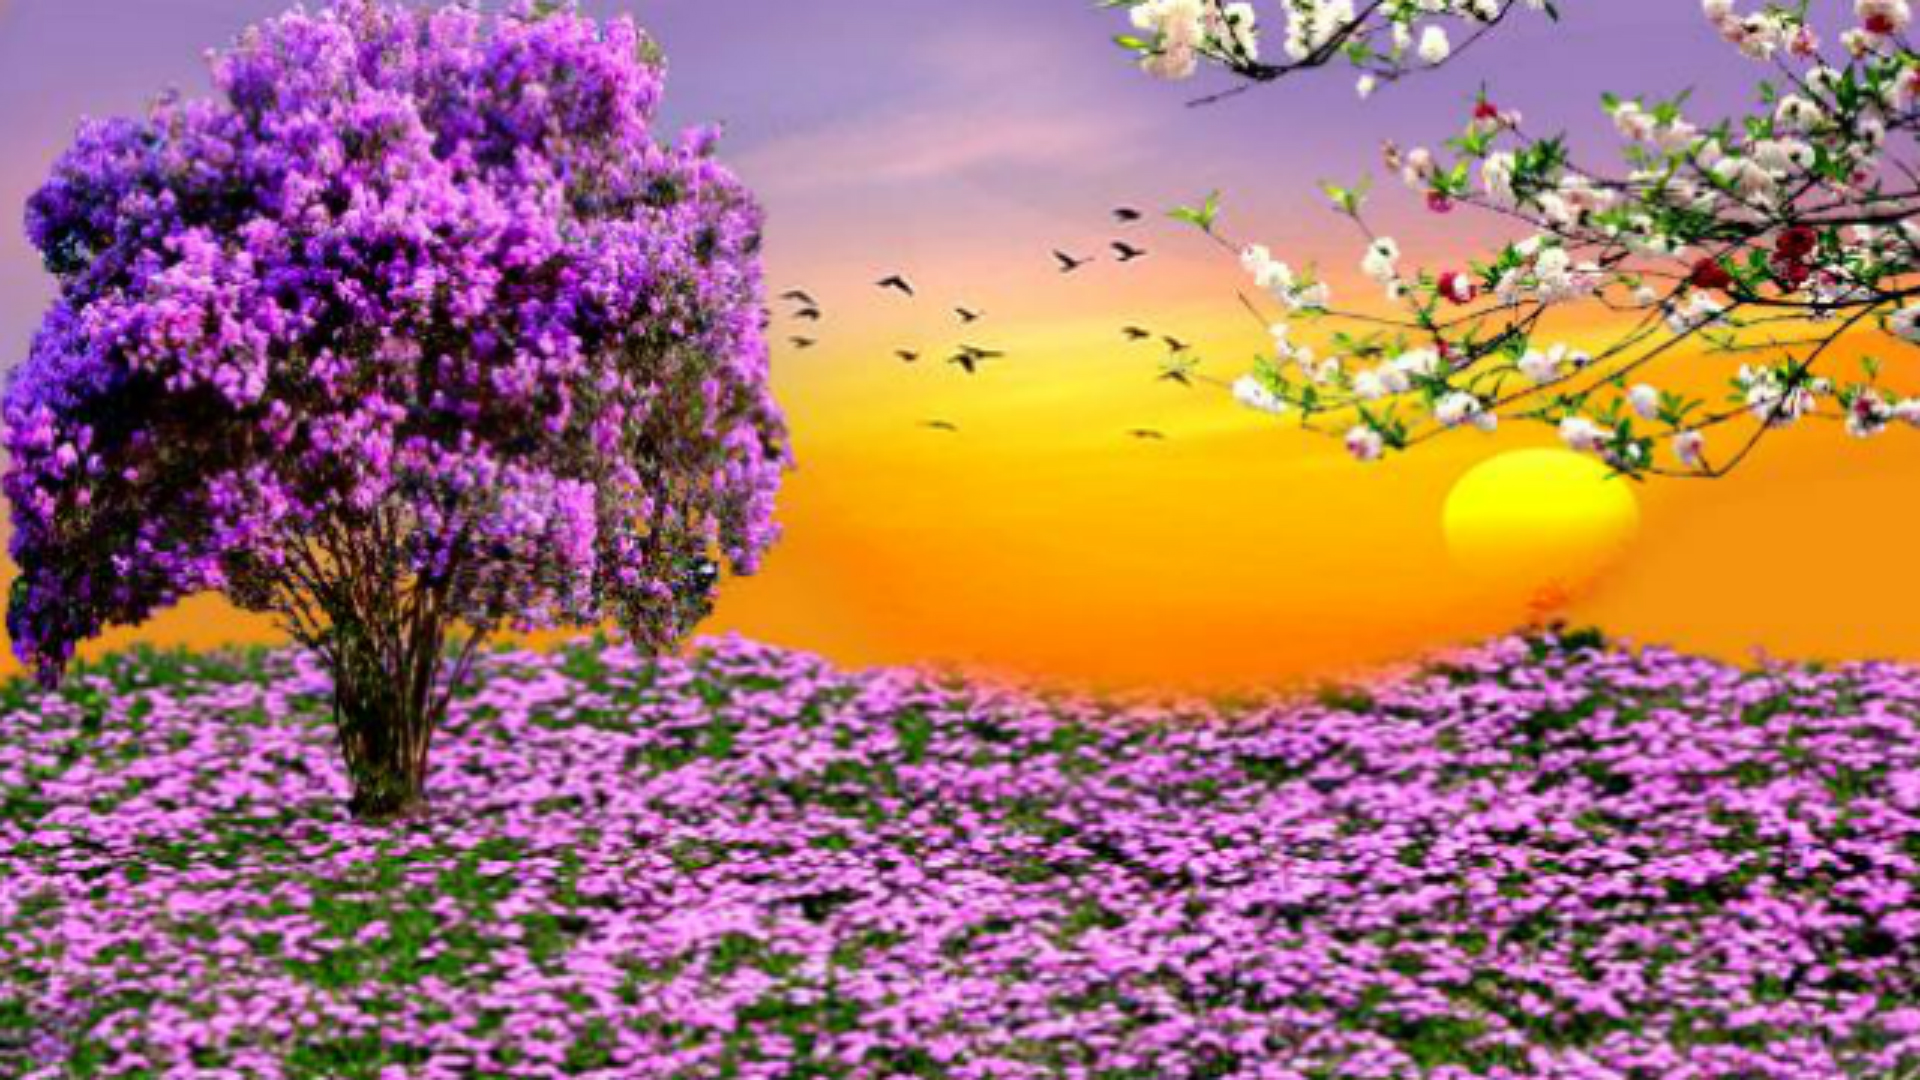 Nature Spring Purple Flowers Garden Sunset HD Wallpapers For Desktop 1920x1080